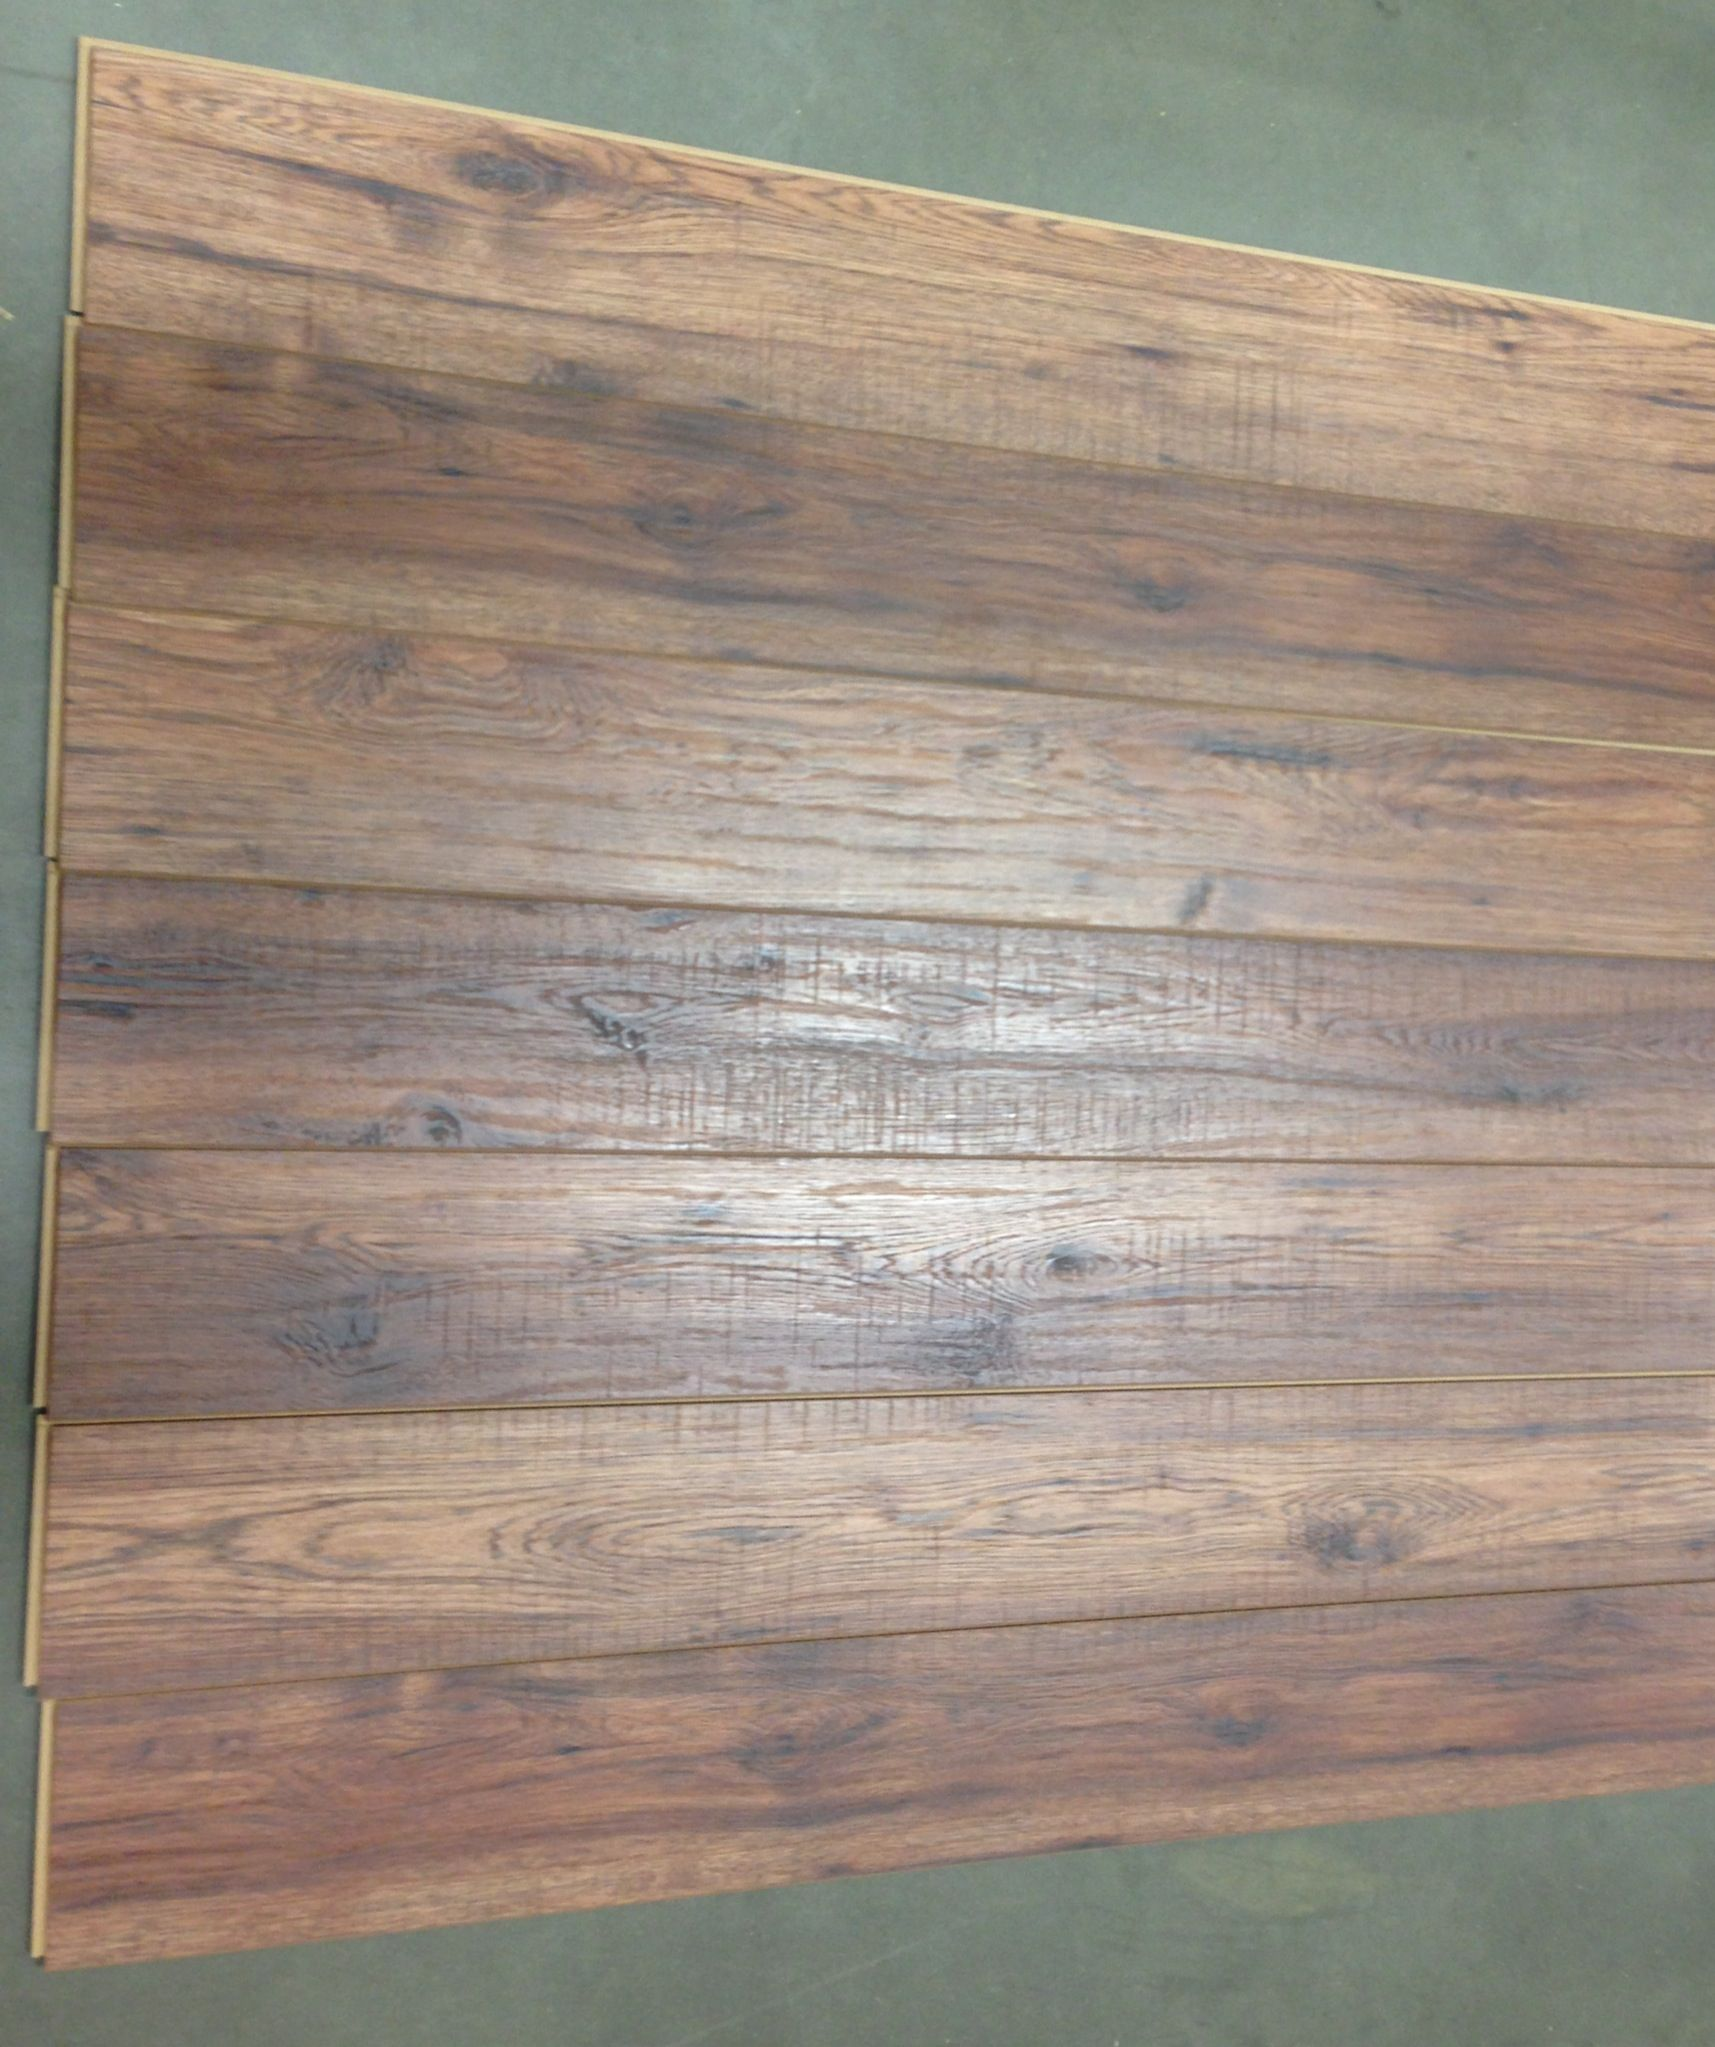 Home Depot Decorators Distressed Brown Hickory Laminate Wear Rating Is Ac4 Looks Really Good Only 1 Board Pattern Repeated In The Box